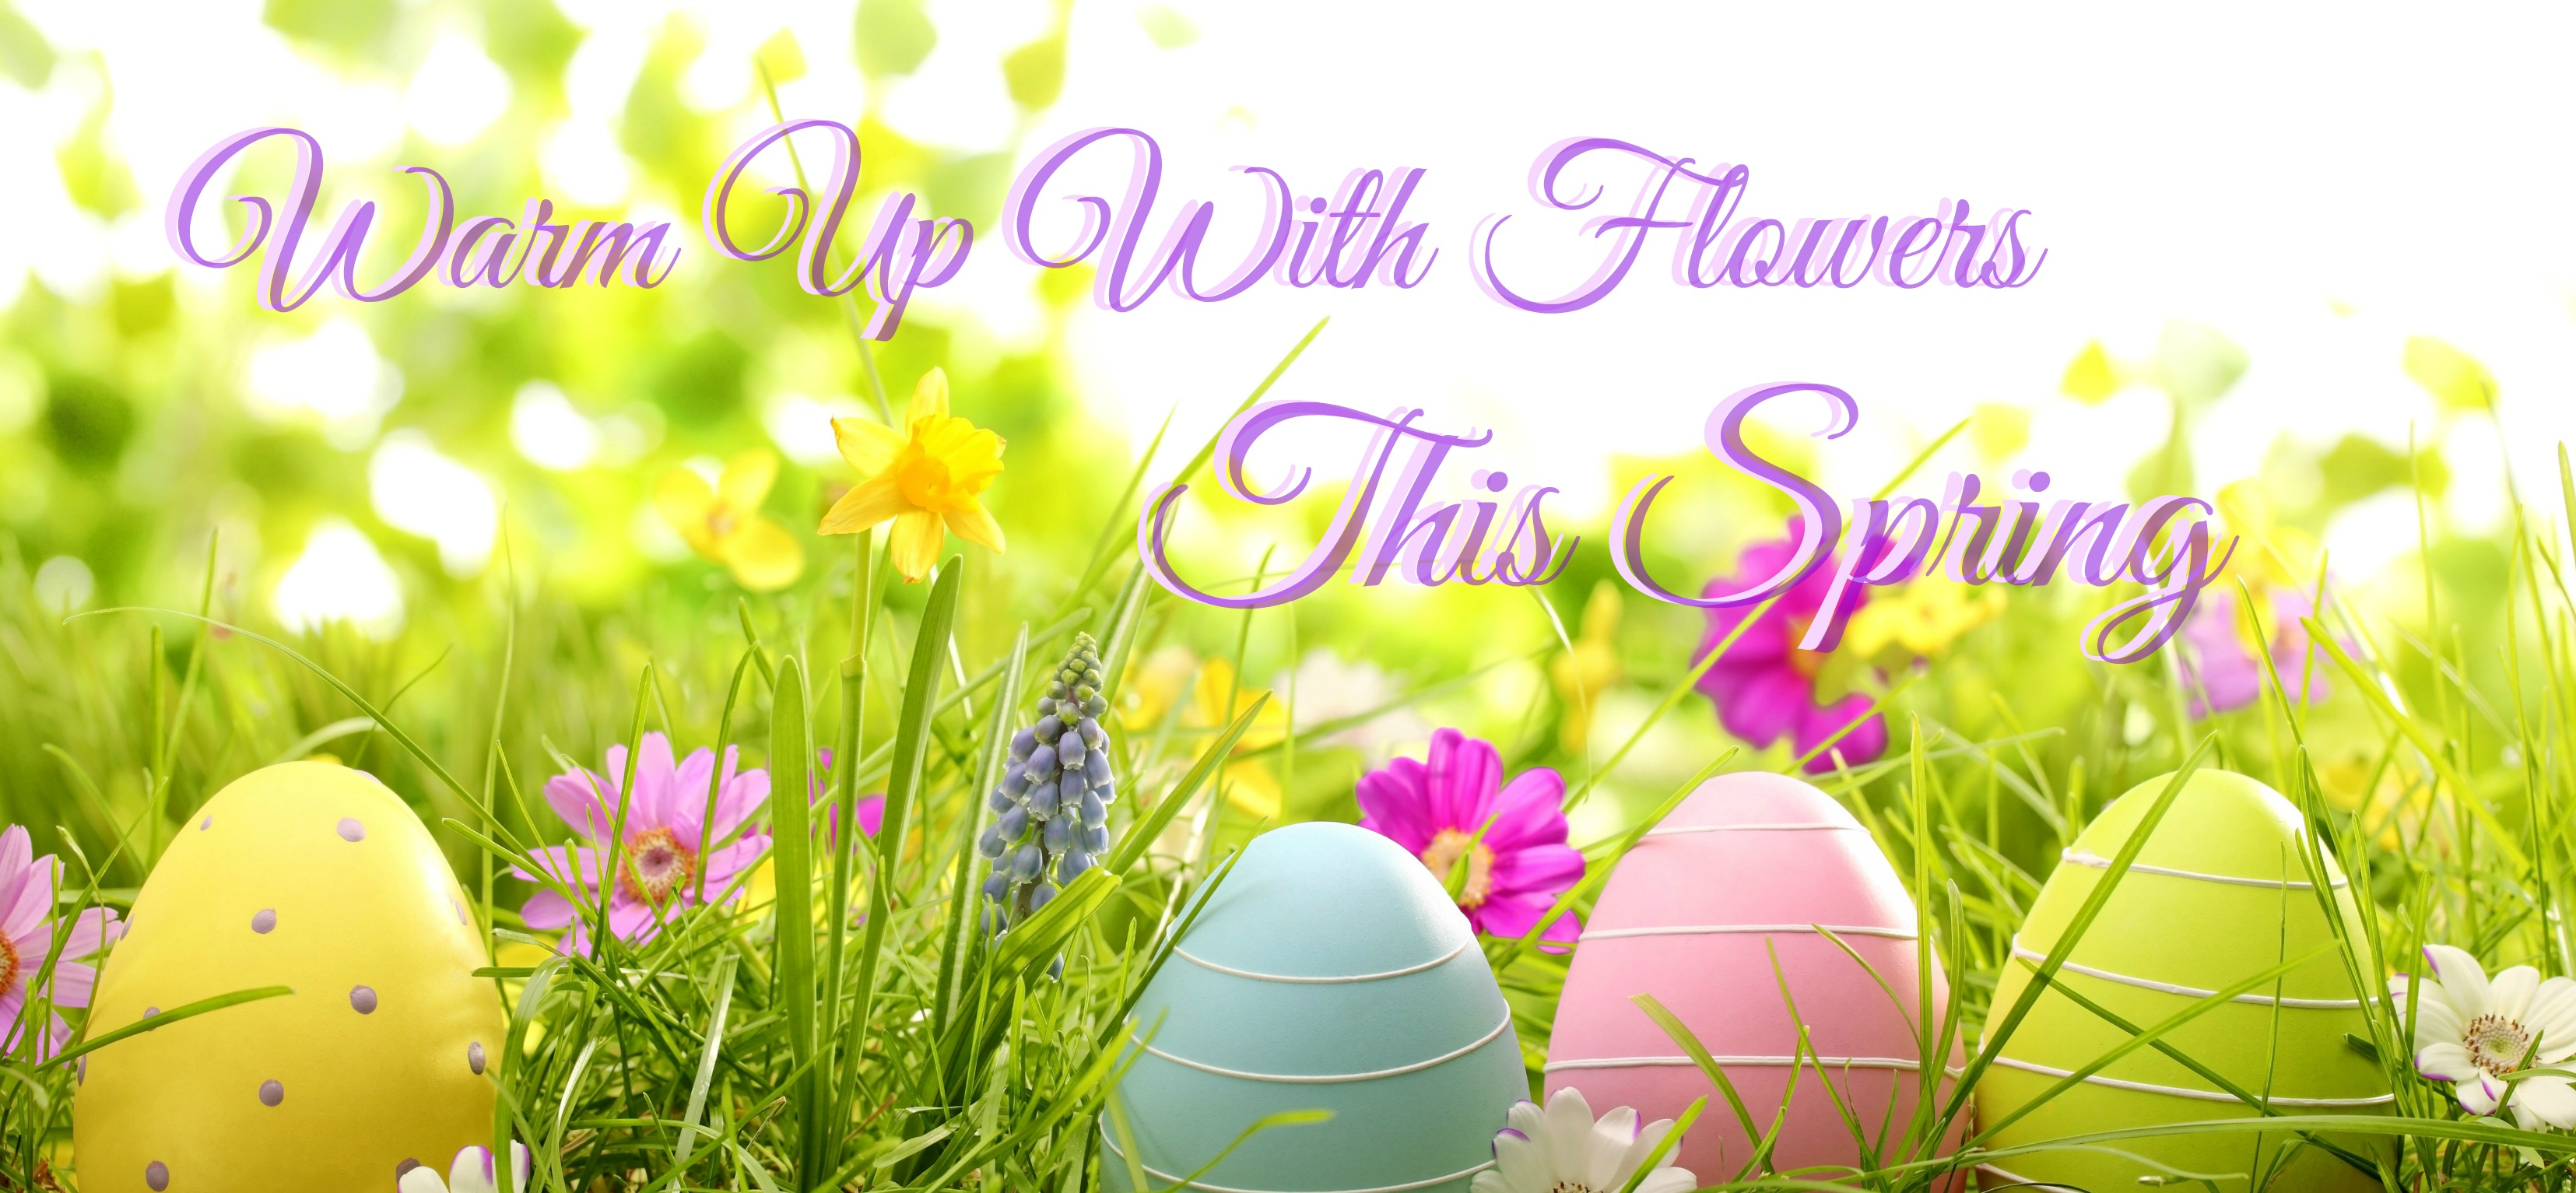 easter-spring-flowers-eggs-painted-grass-wallpapers-photos.jpg